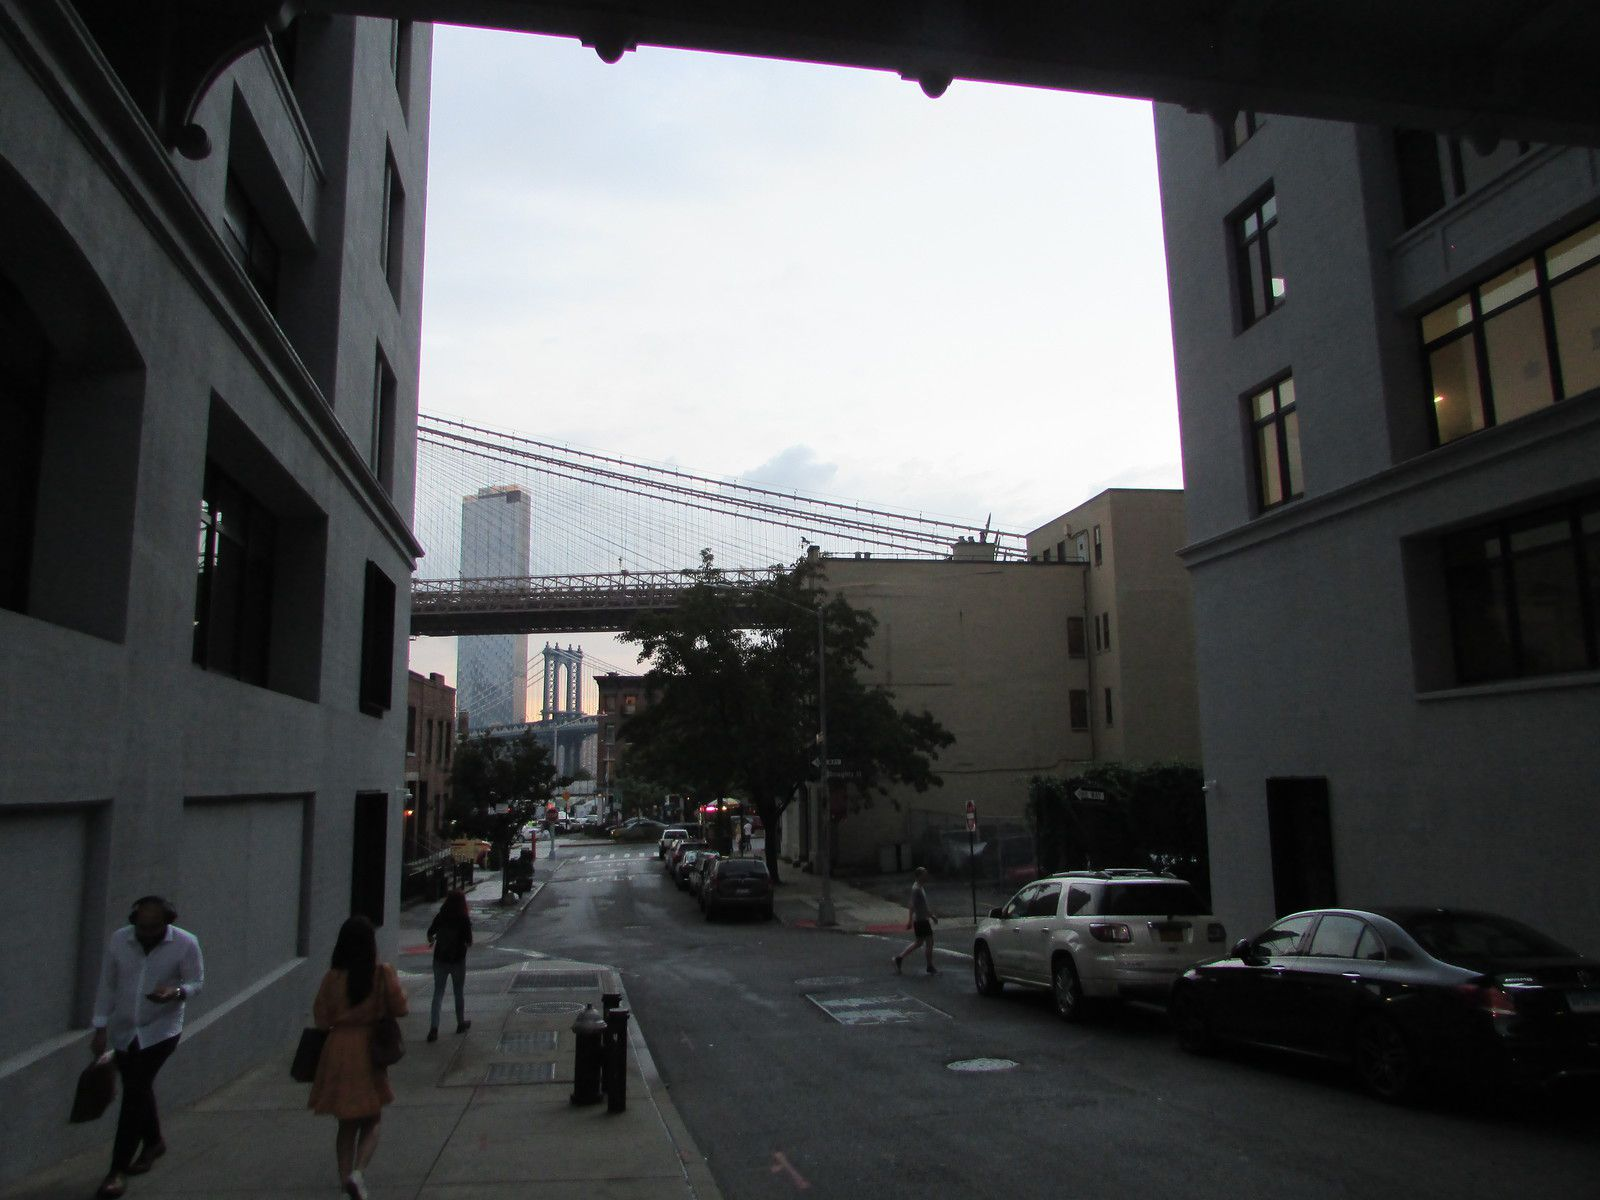 Le quartier Dumbo et le pont de Brooklyn .